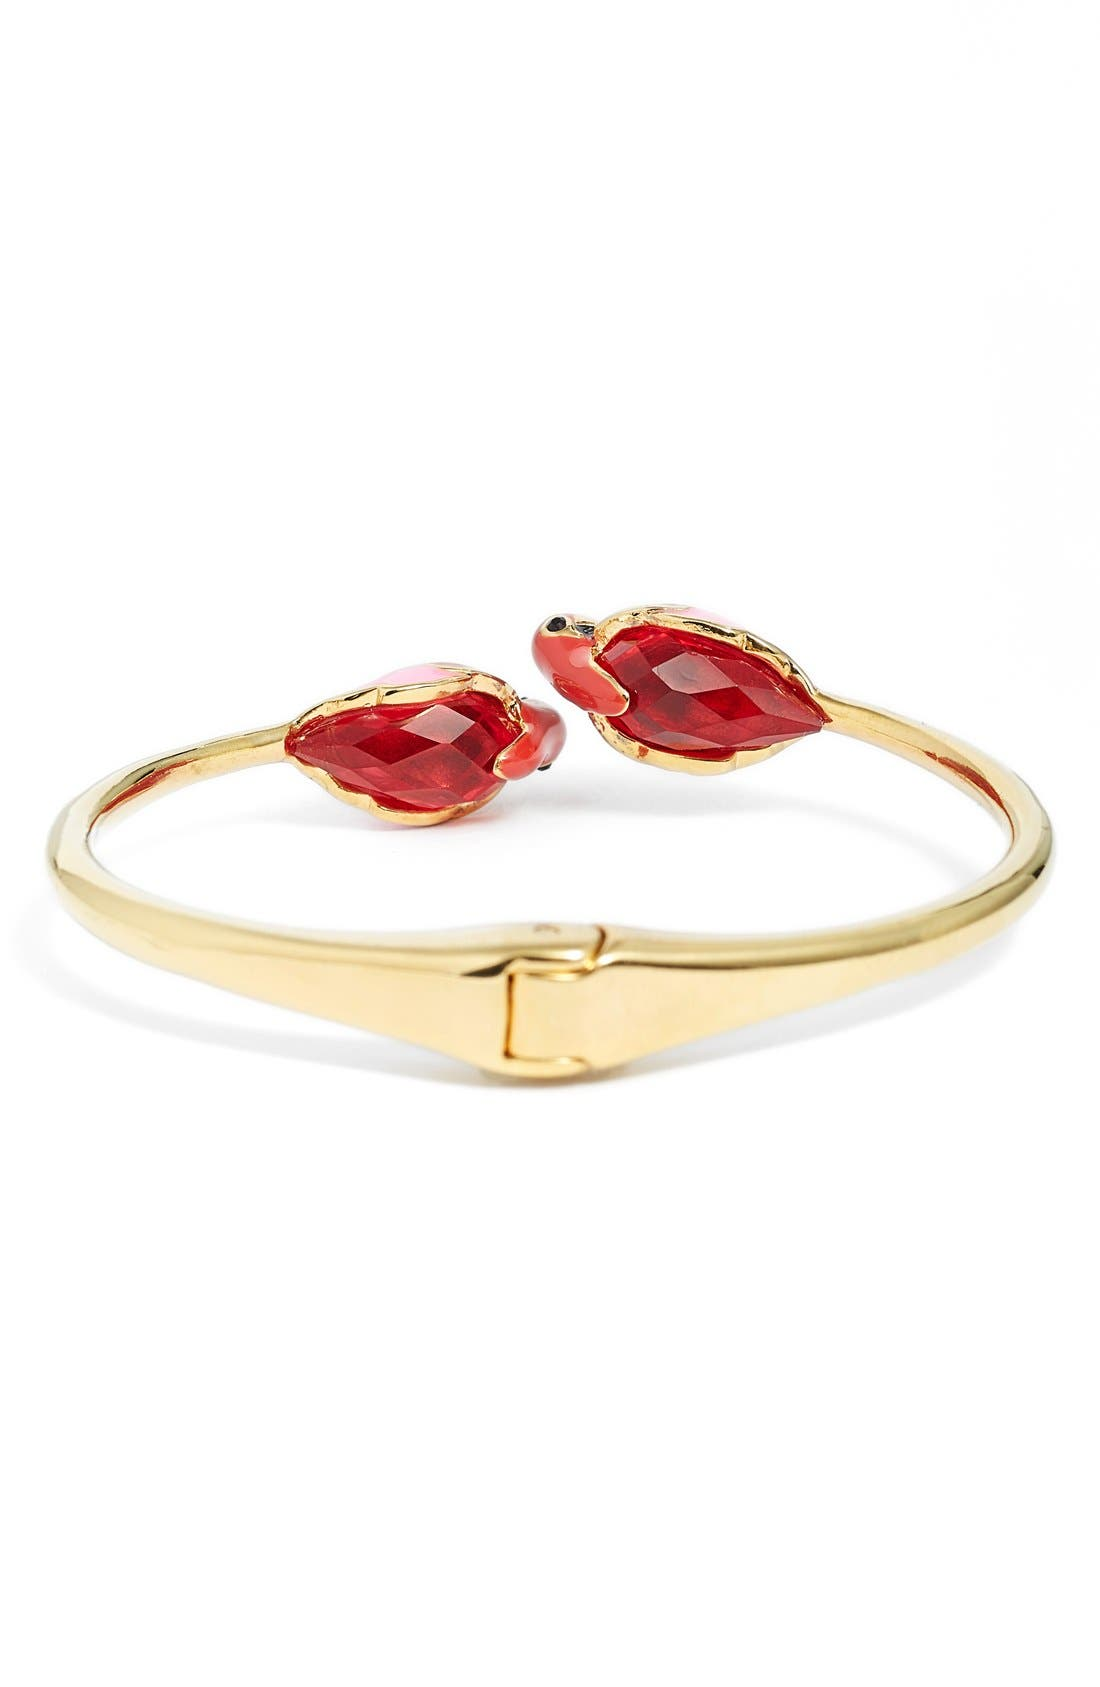 Alternate Image 2  - kate spade new york 'out of office' parrot bangle